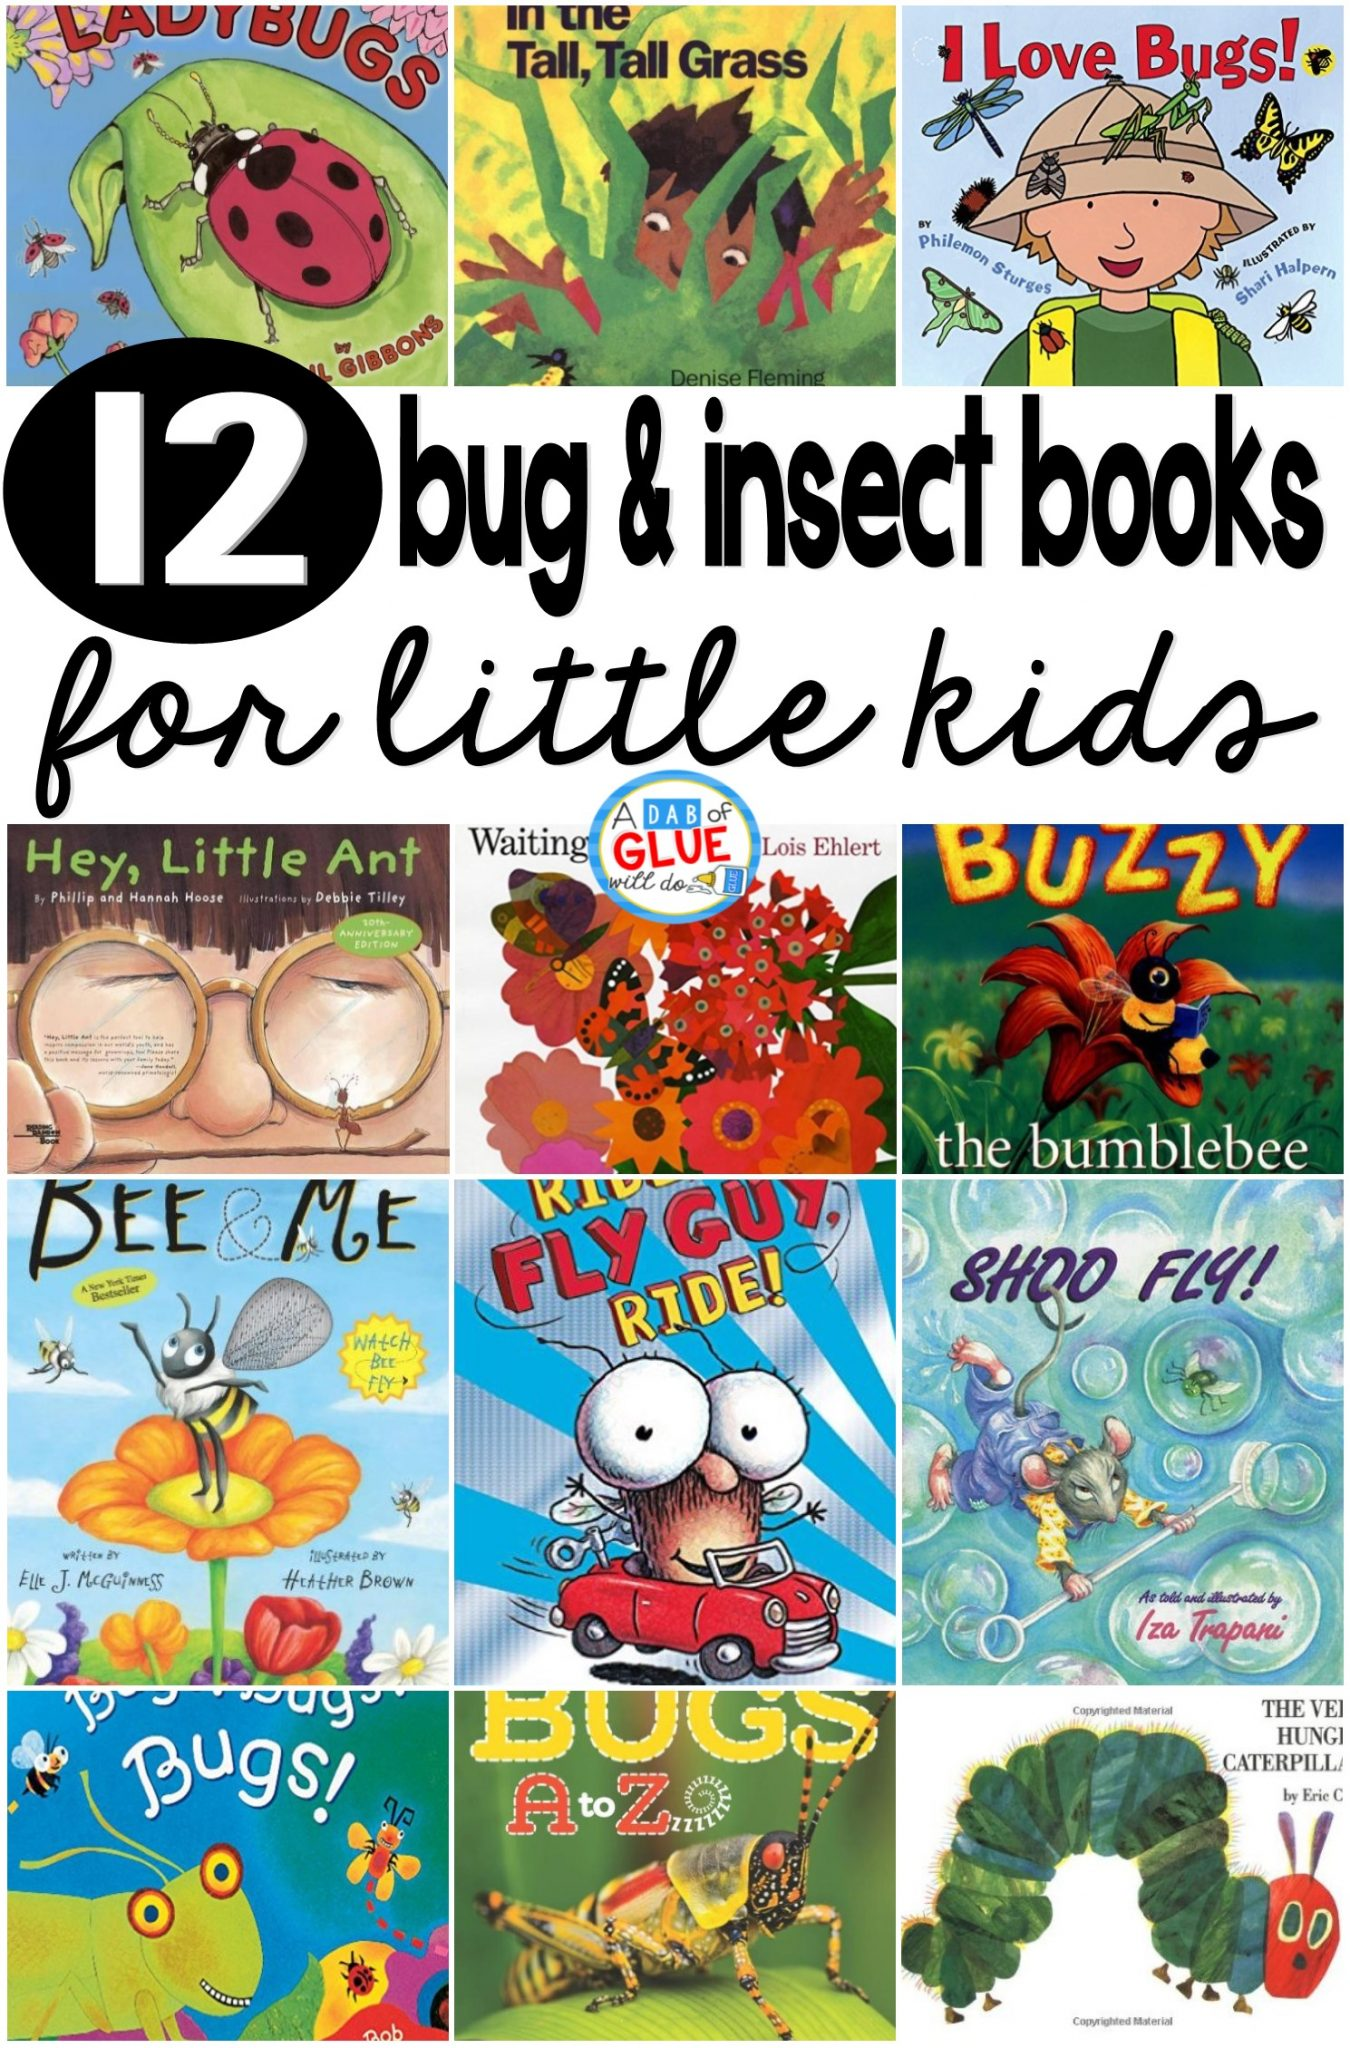 12 Bug And Insect Books For Little Kids